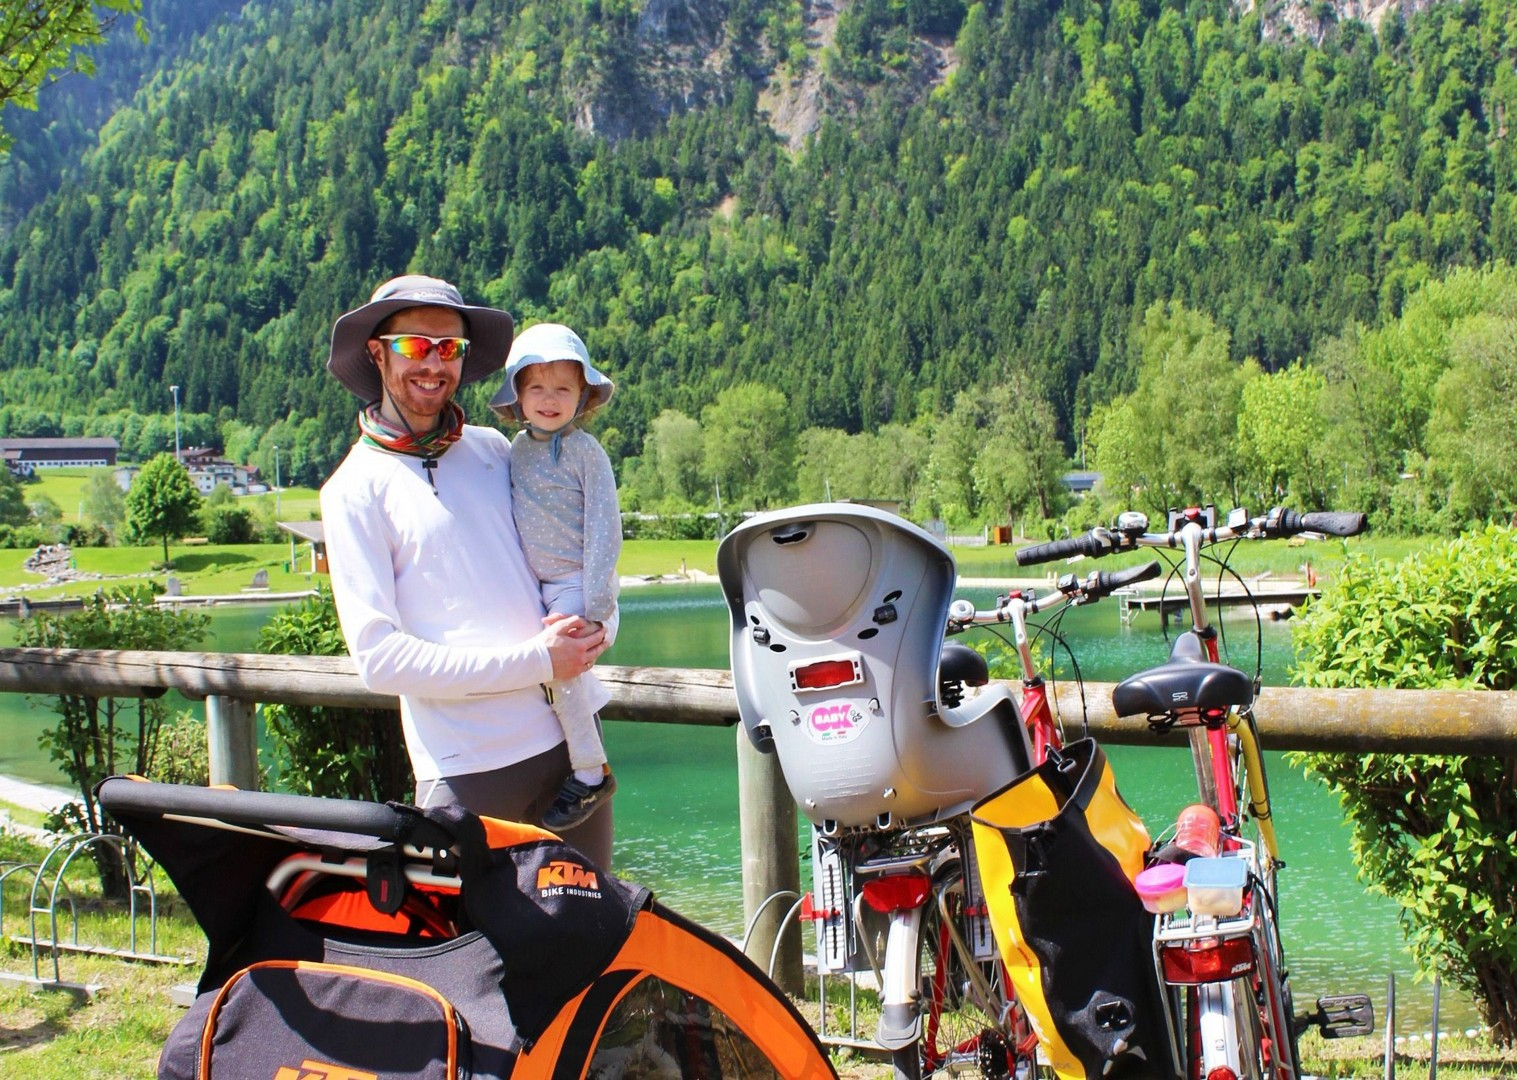 children-family-cycling-holiday-austria-skedaddle.jpg - Austria - Tauern Valleys - Self-Guided Family Cycling Holiday - Family Cycling